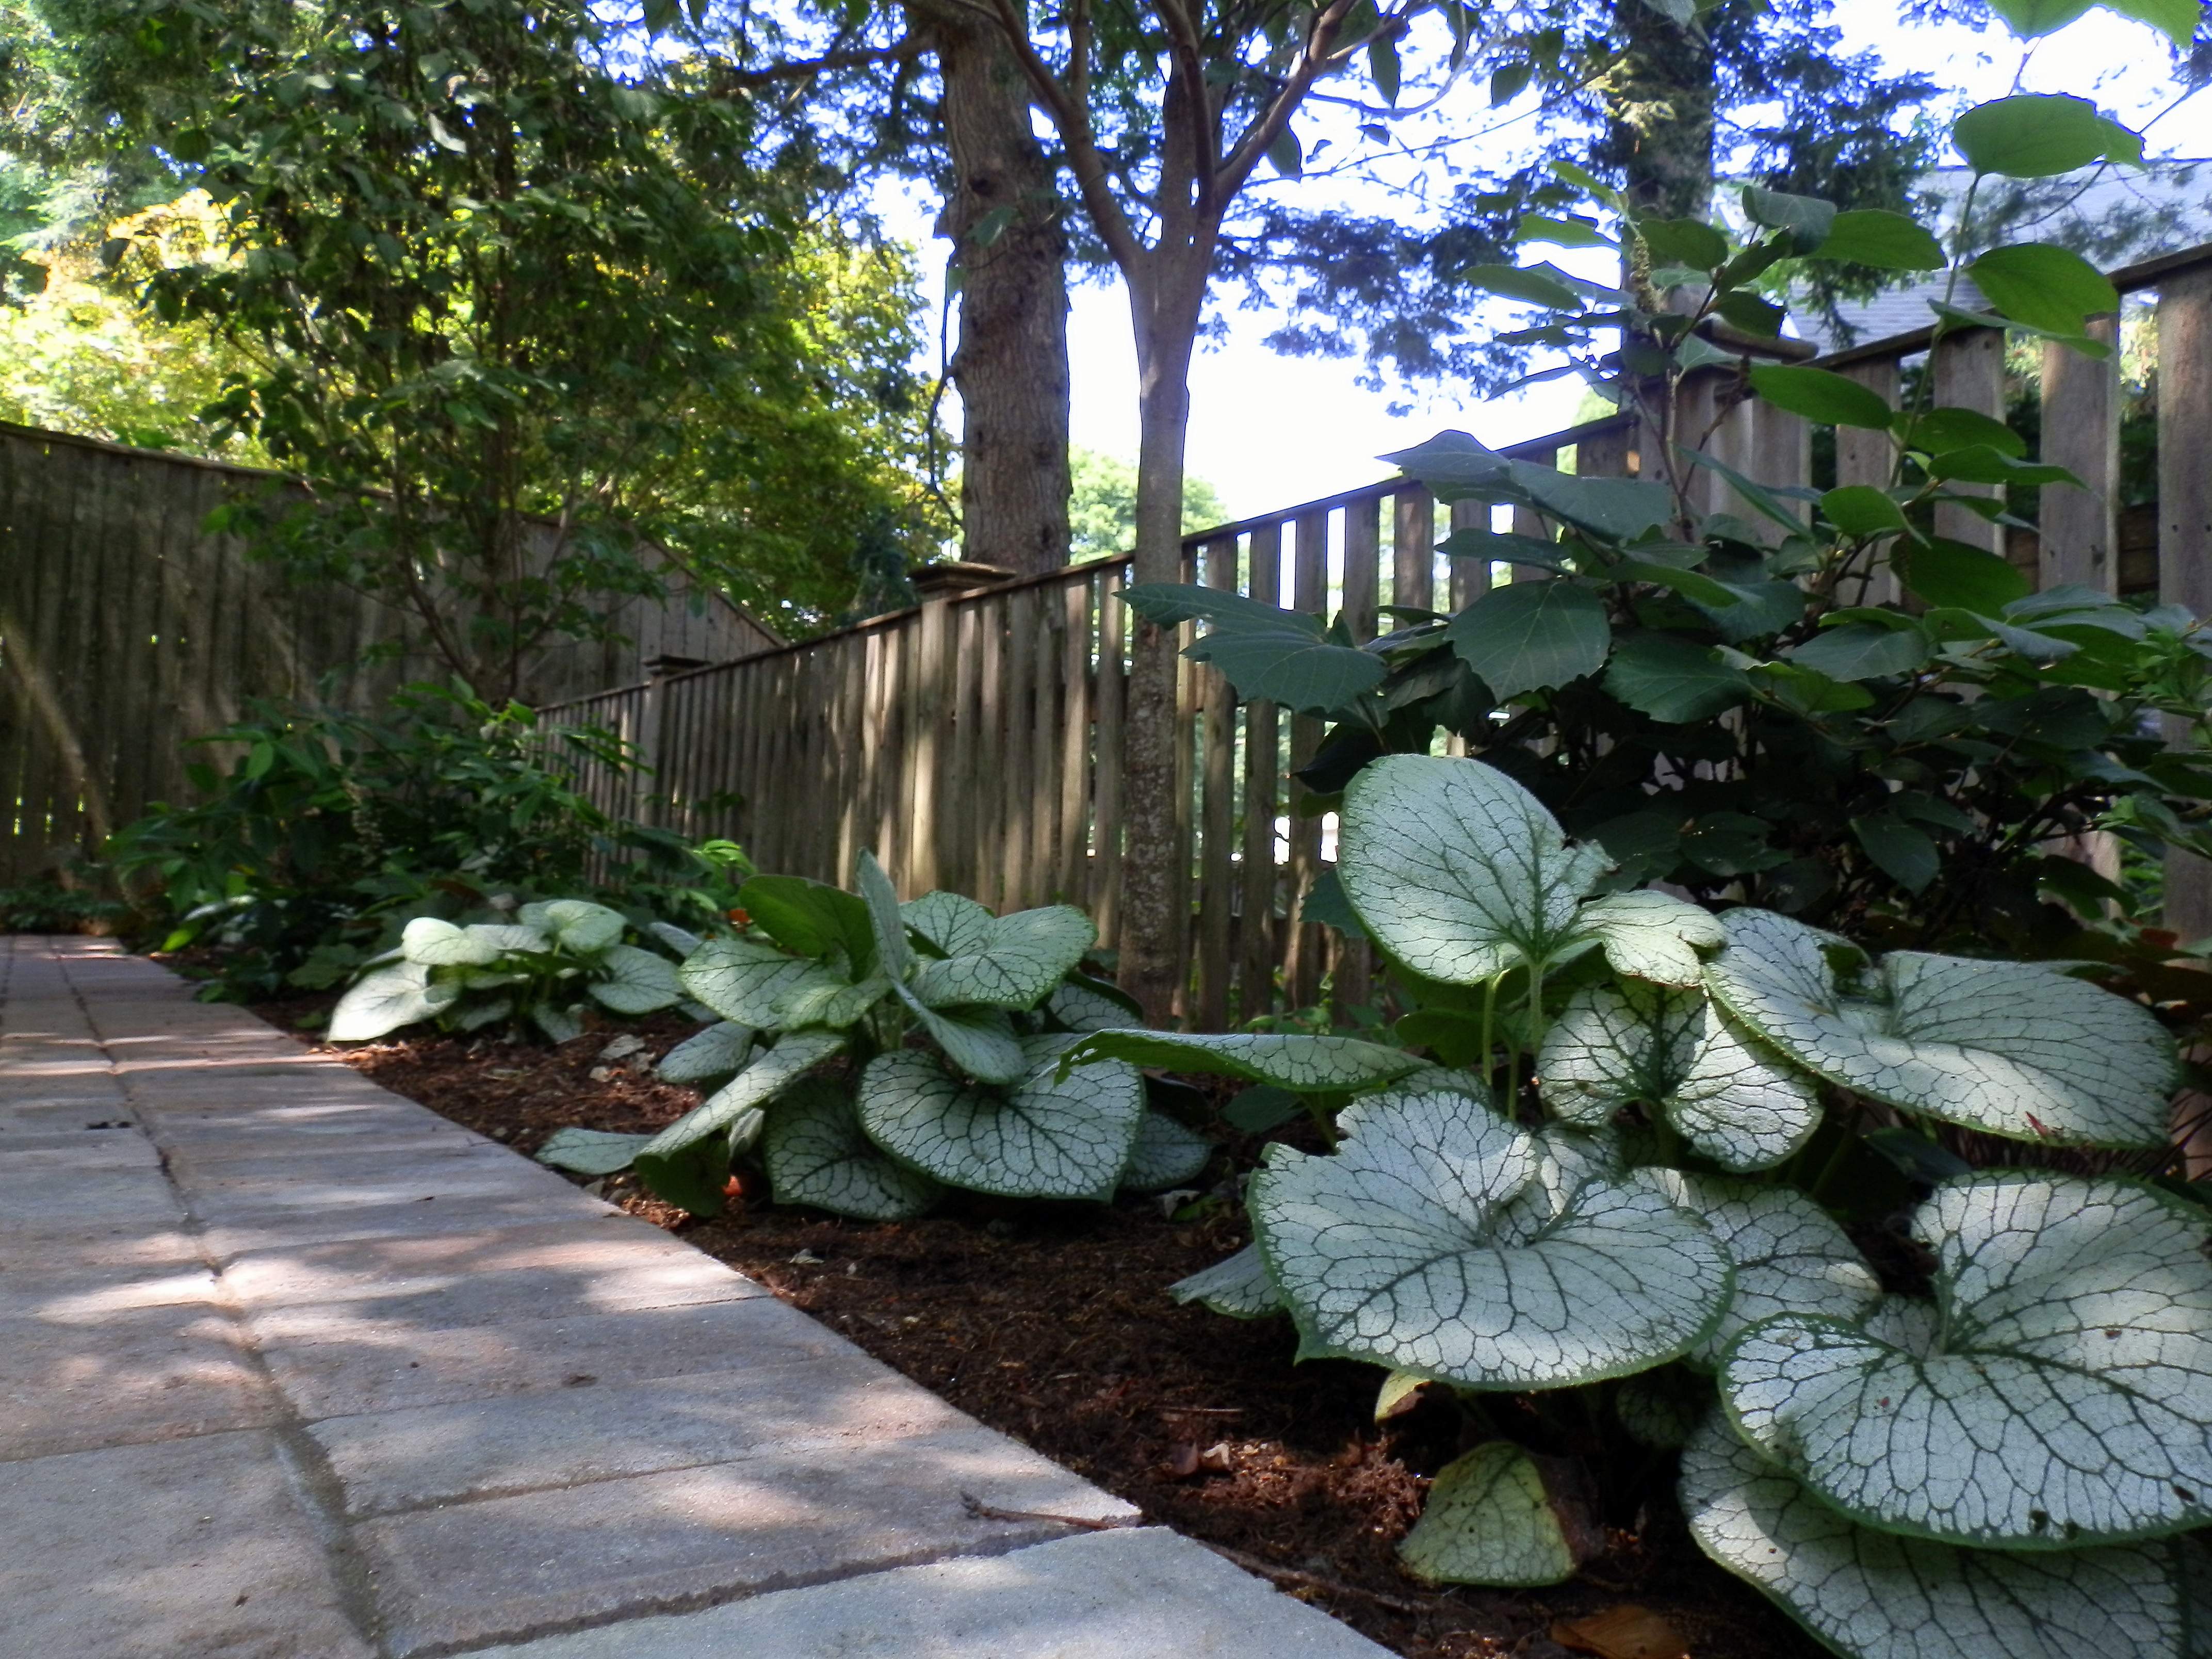 Garden Shade Shade Gardens Indianapolis Wooden Slated Plant